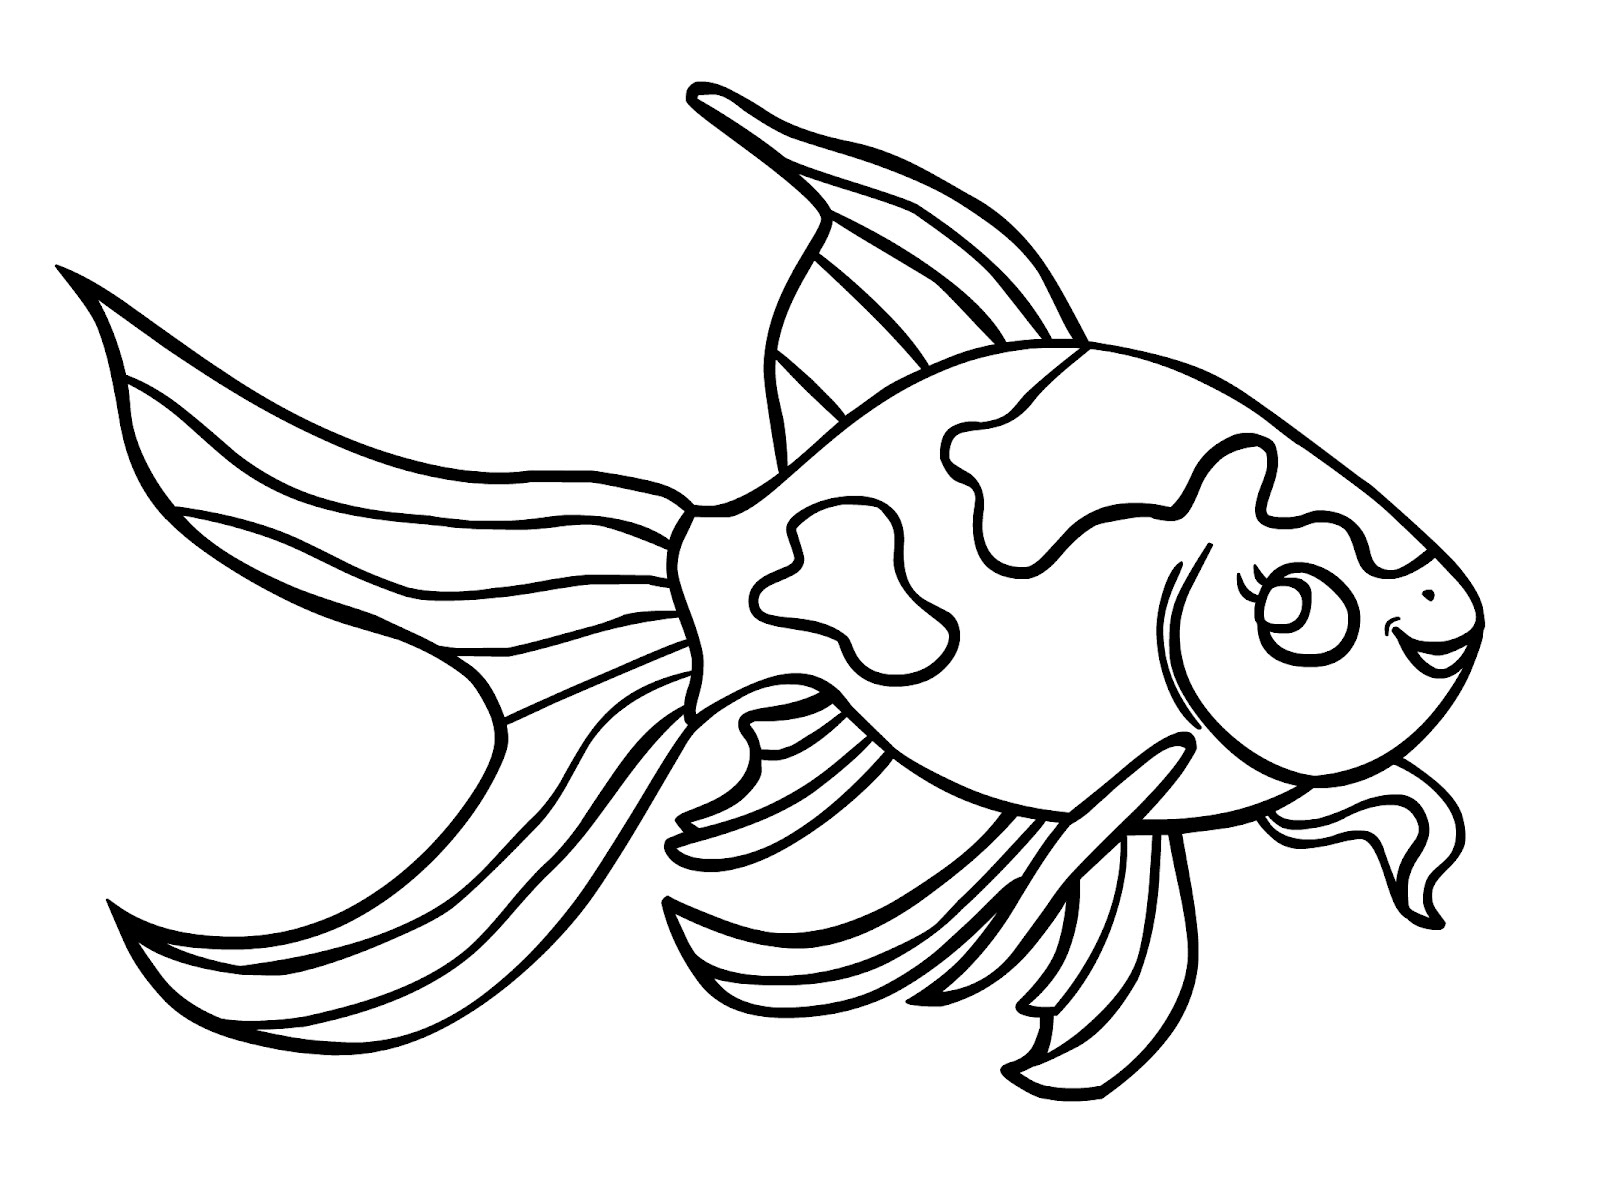 goldfish coloring goldfish coloring pages download and print goldfish goldfish coloring